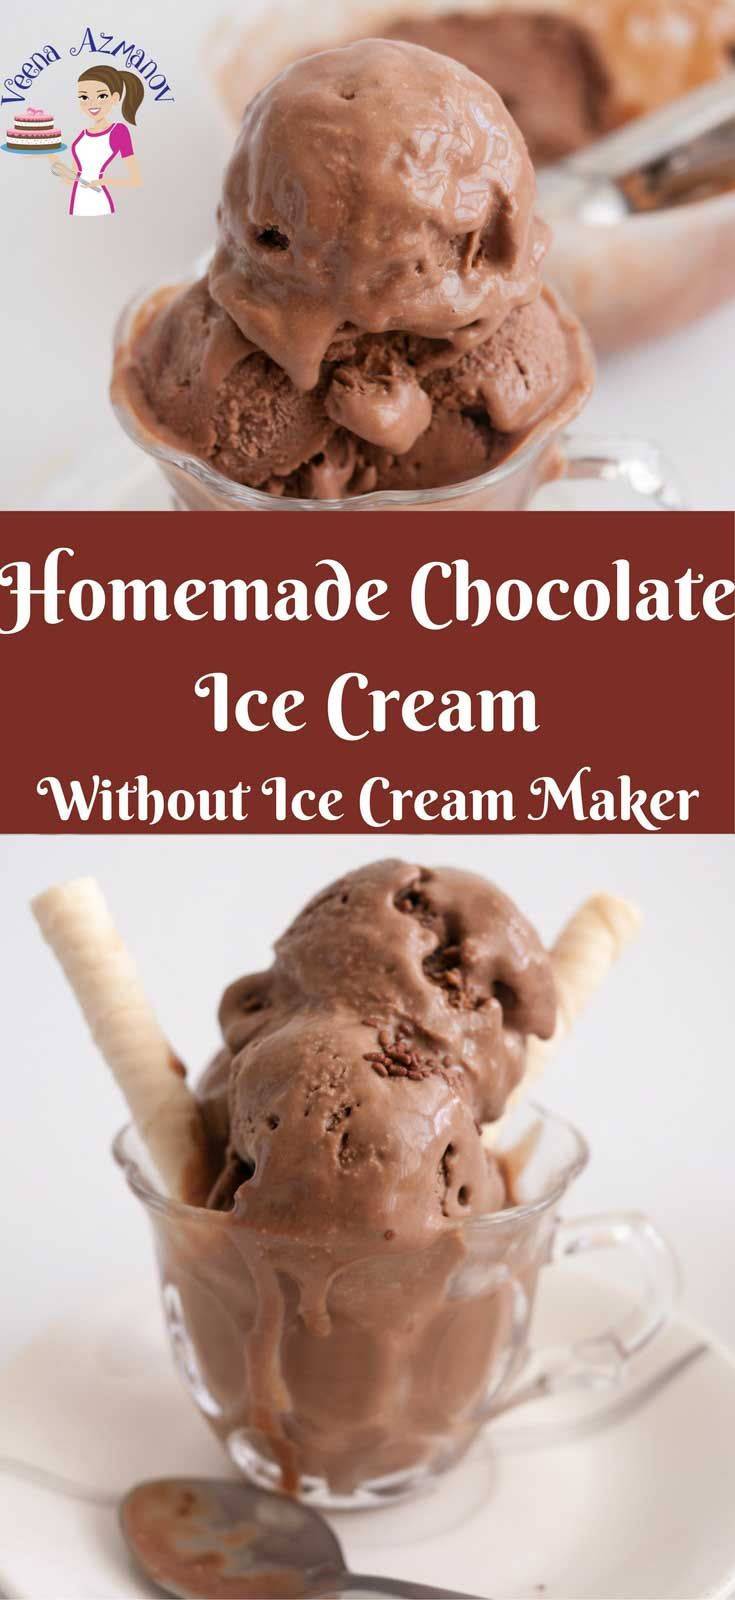 Homemade Chocolate Ice Cream No Churn This Homemade Chocolate Ice Cream Is A Re Chocolate Ice Cream Recipe Homemade Chocolate Ice Cream Chocolate Ice Cream